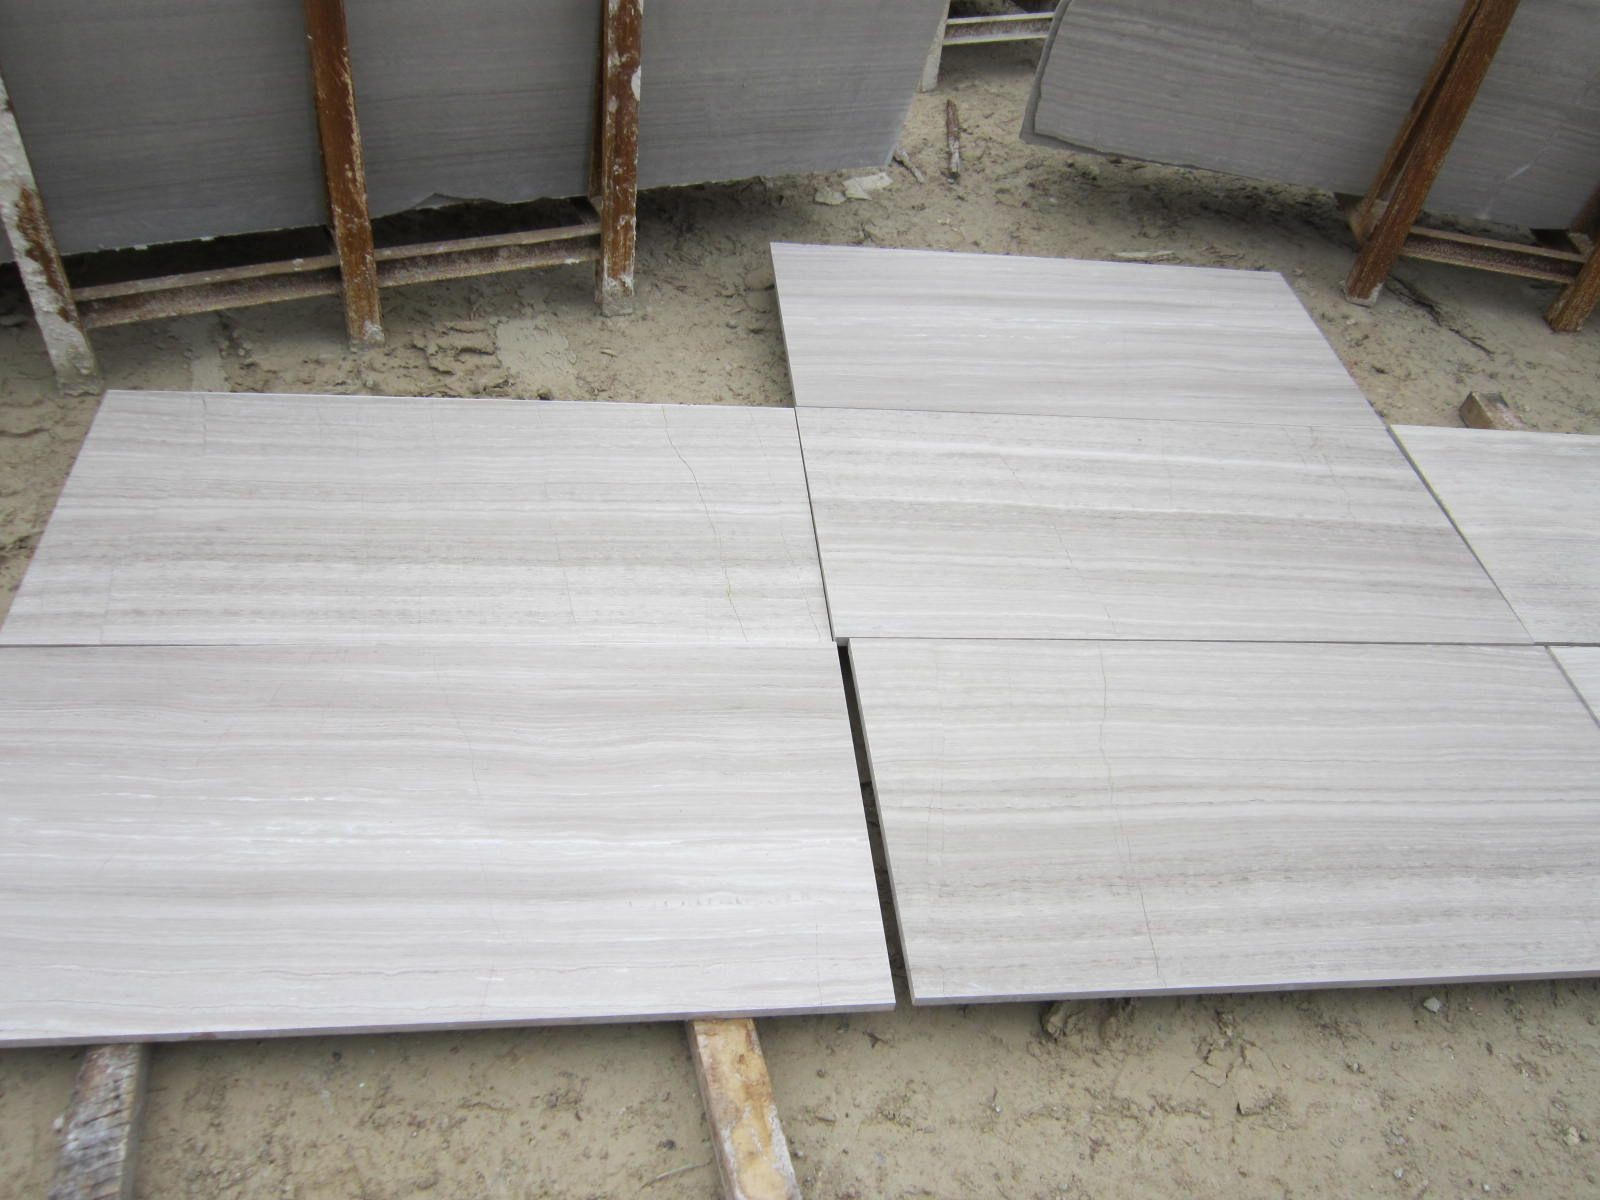 White wooden Marble tiles for bathroom flooring